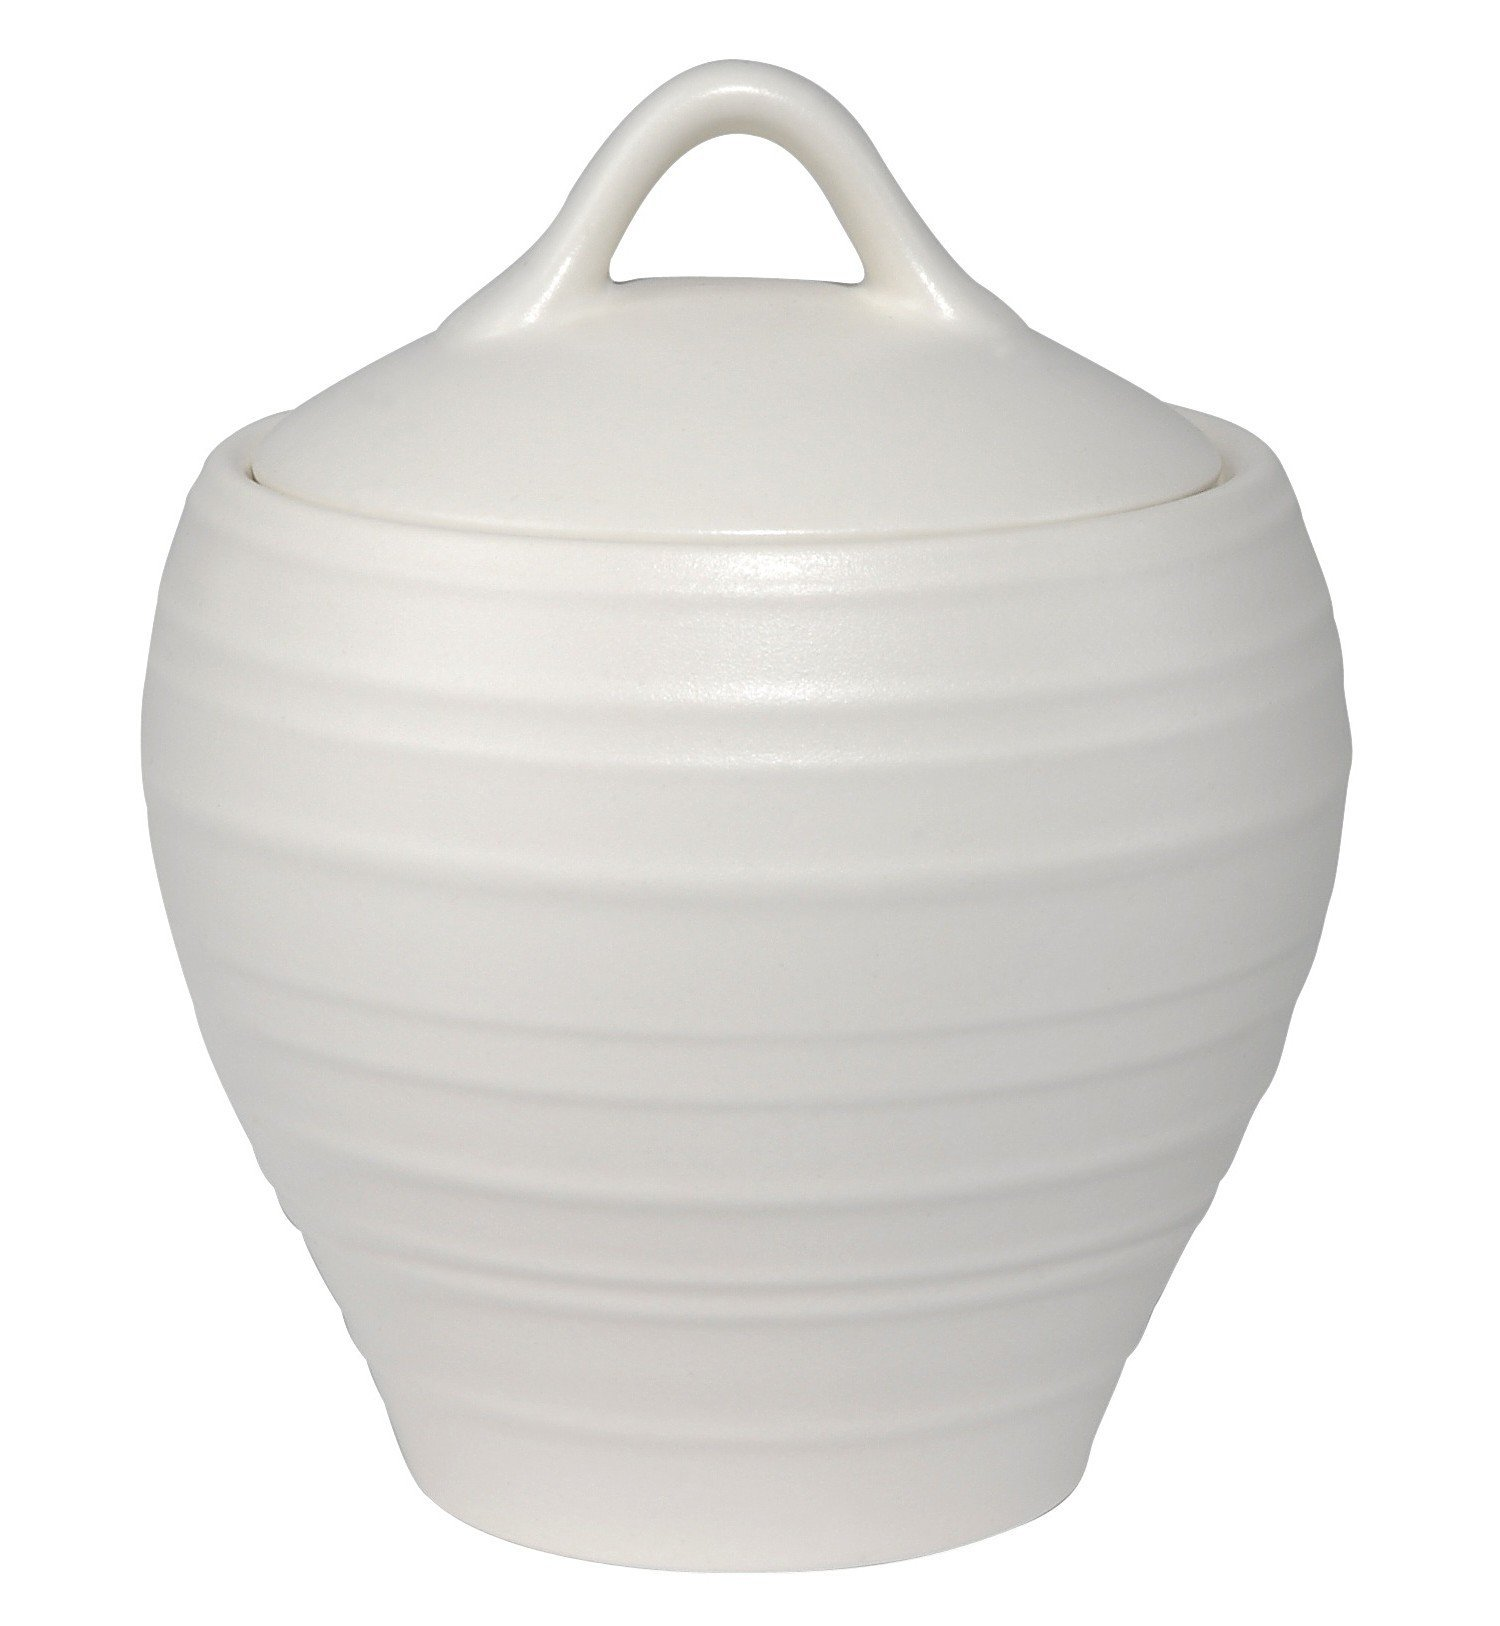 Mikasa Swirl White Covered Sugar Bowl, White